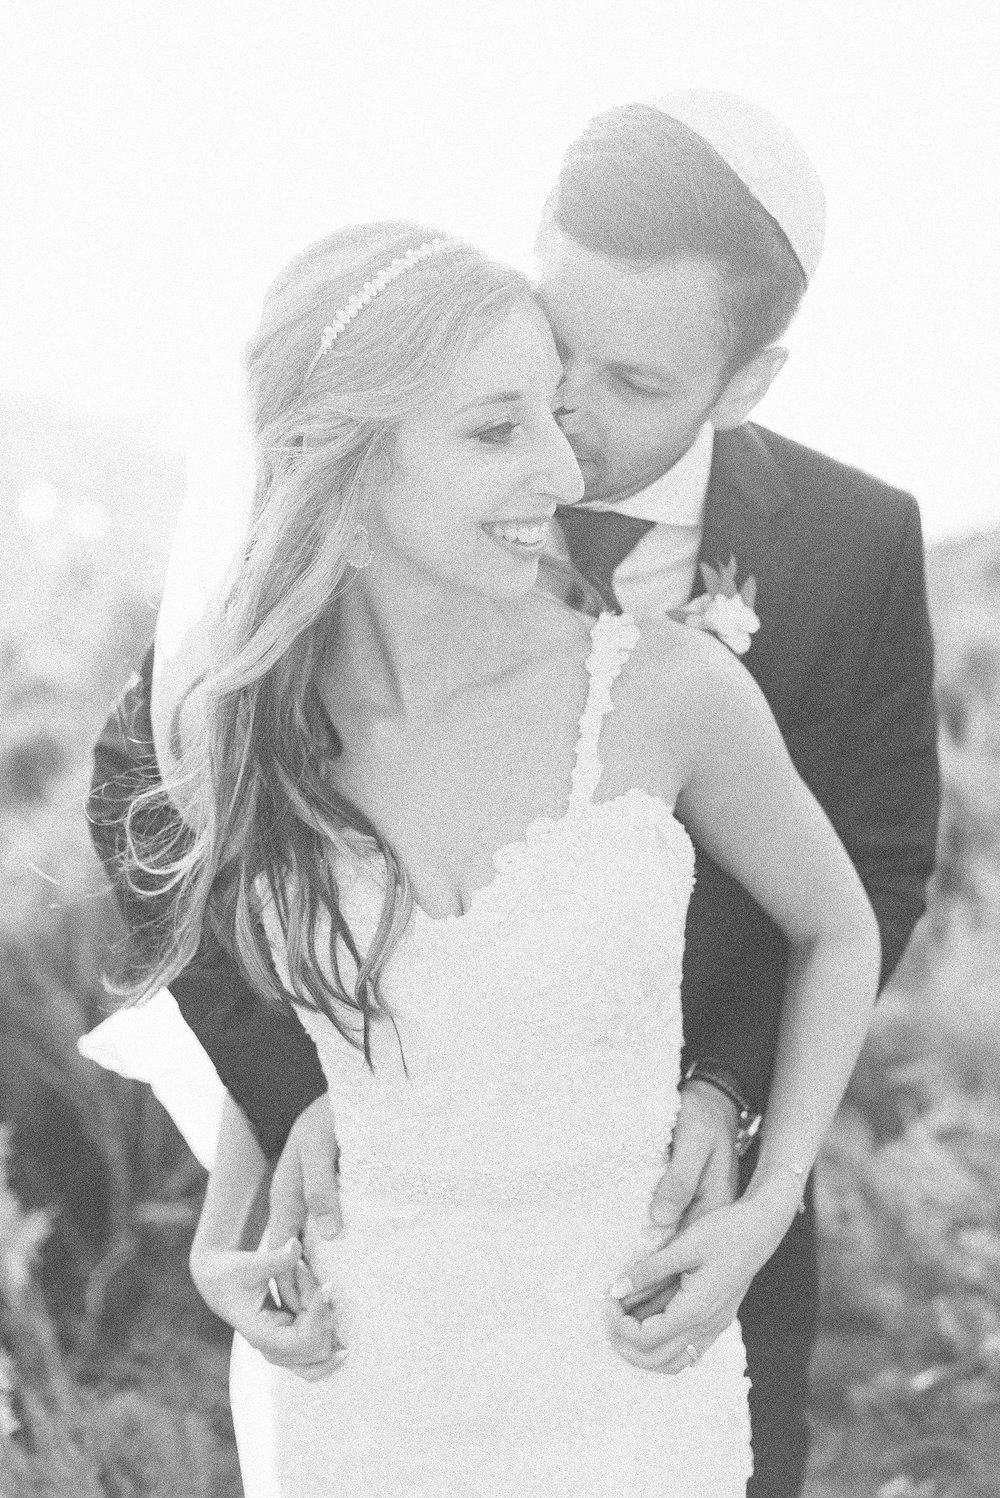 Cape Town Wedding Photographer Darren Bester - SuikerBossie - Stephen and Mikaela_0039.jpg